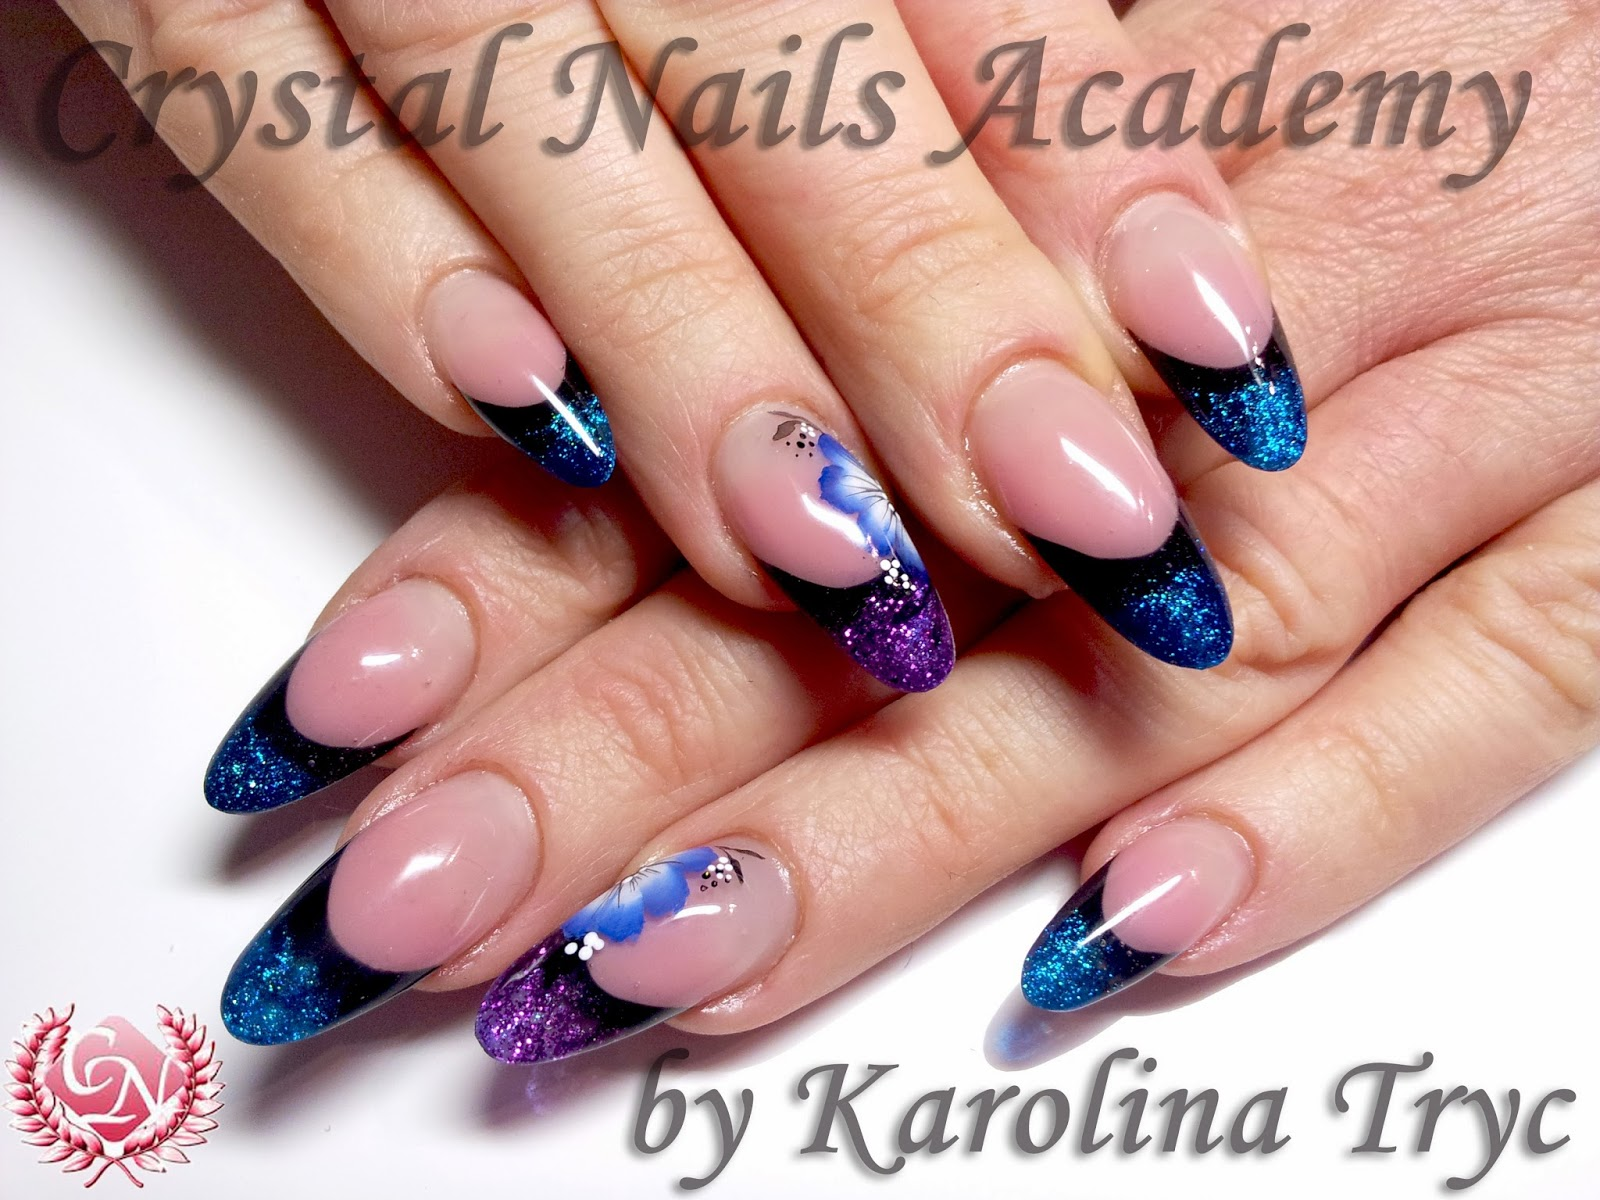 ***NAIL ART *** ACRYLIC *** UV GEL NAILS EXTENSION ...